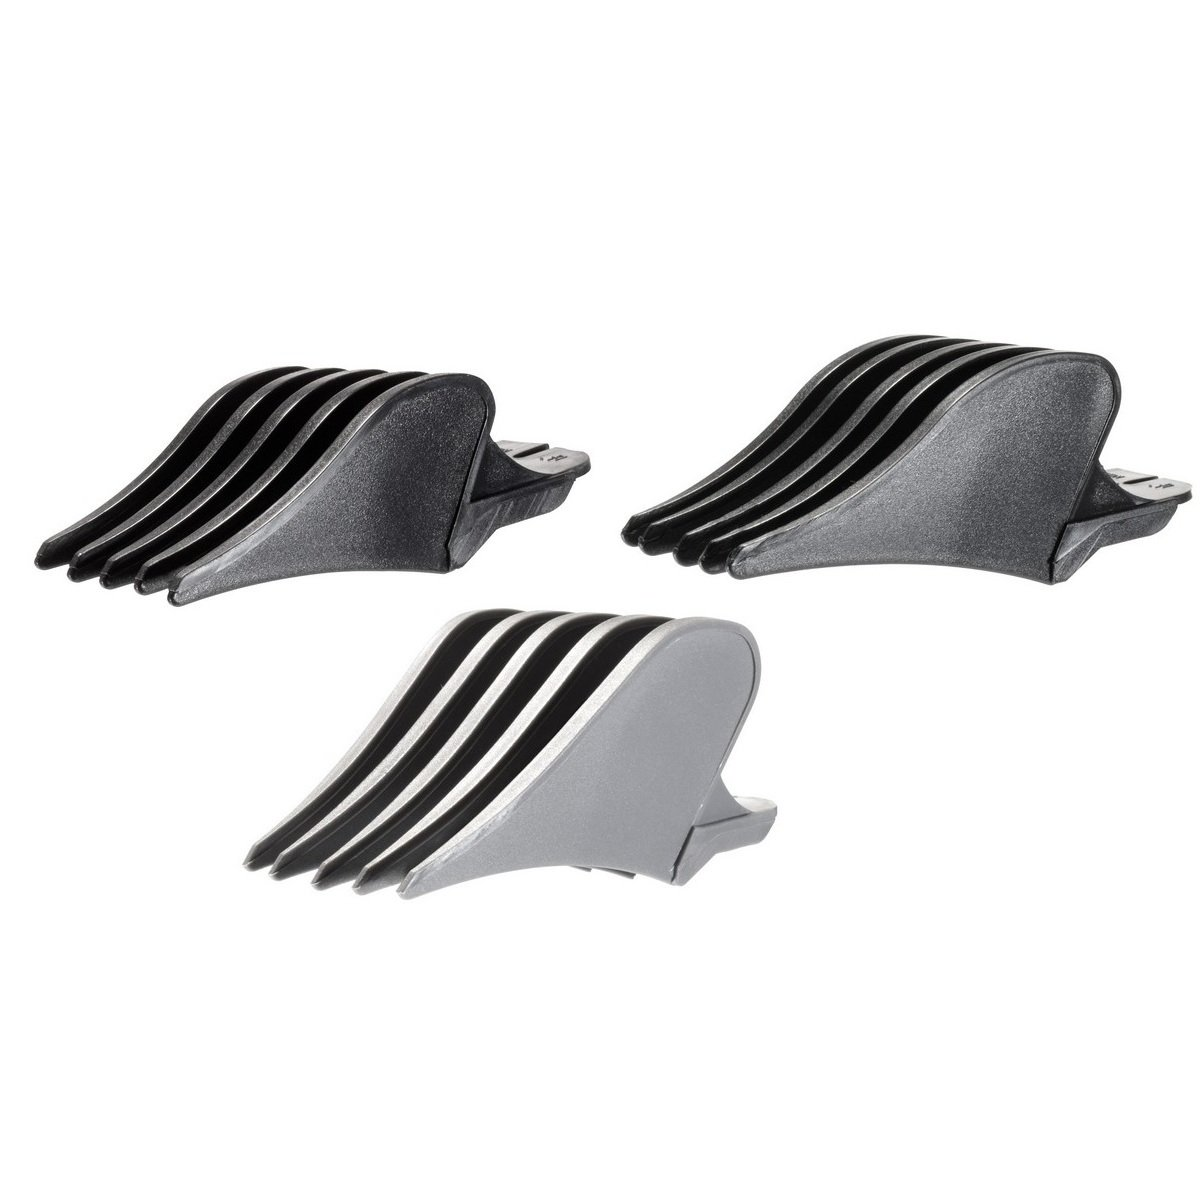 Miaco Size 10, 12 and 16 (1.25'', 1.5'' and 2'') Clipper Guide Comb Set fits Wahl Clippers by Miaco